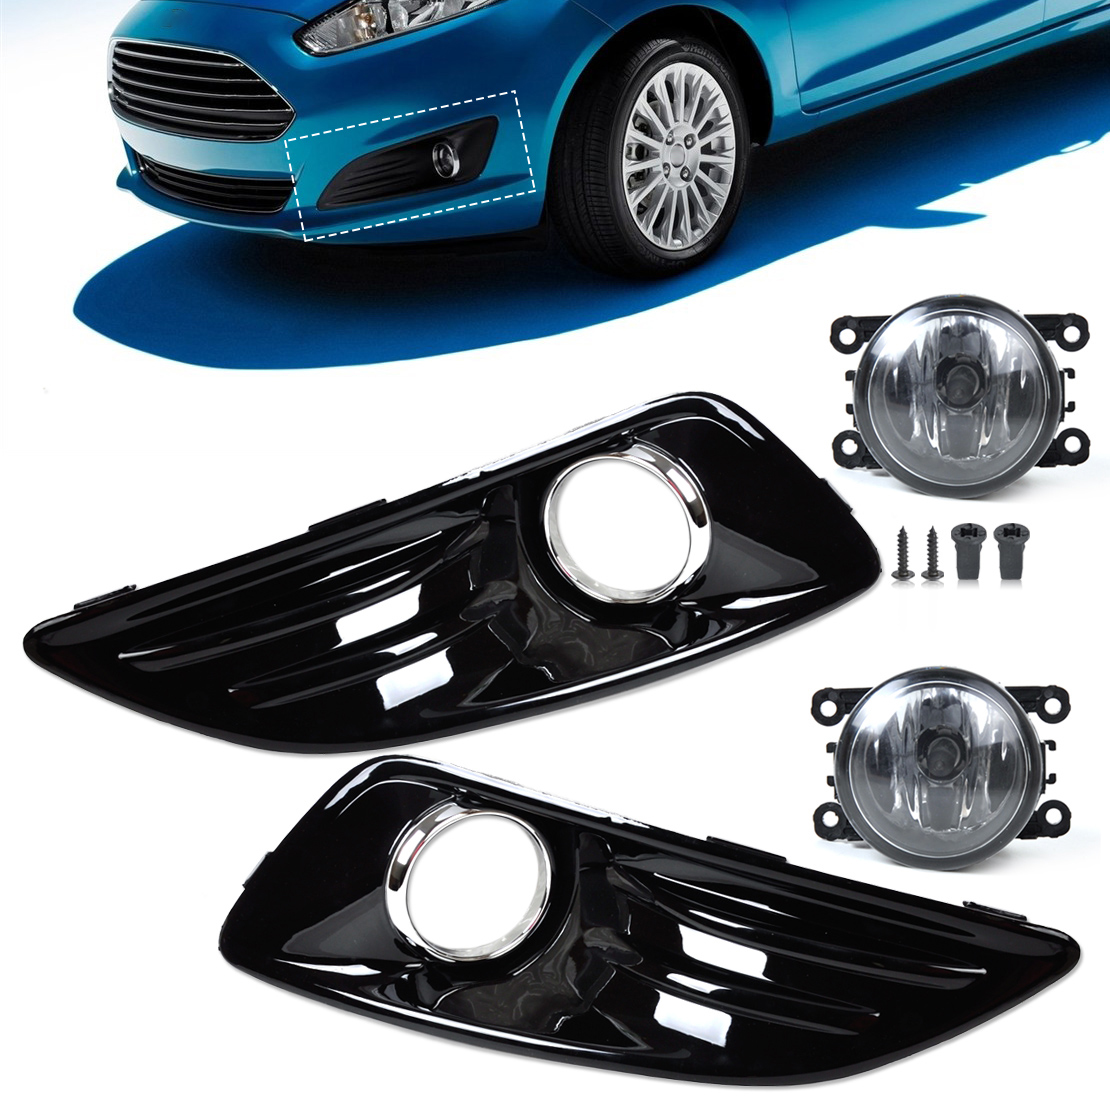 DWCX Car Black with Baking Finish 4pcs Front Bumper Fog Light Cover Grille + Fog Light Lamp Set fit for Ford Fiesta 2014-in Car Light Assembly from Automobiles & Motorcycles    1